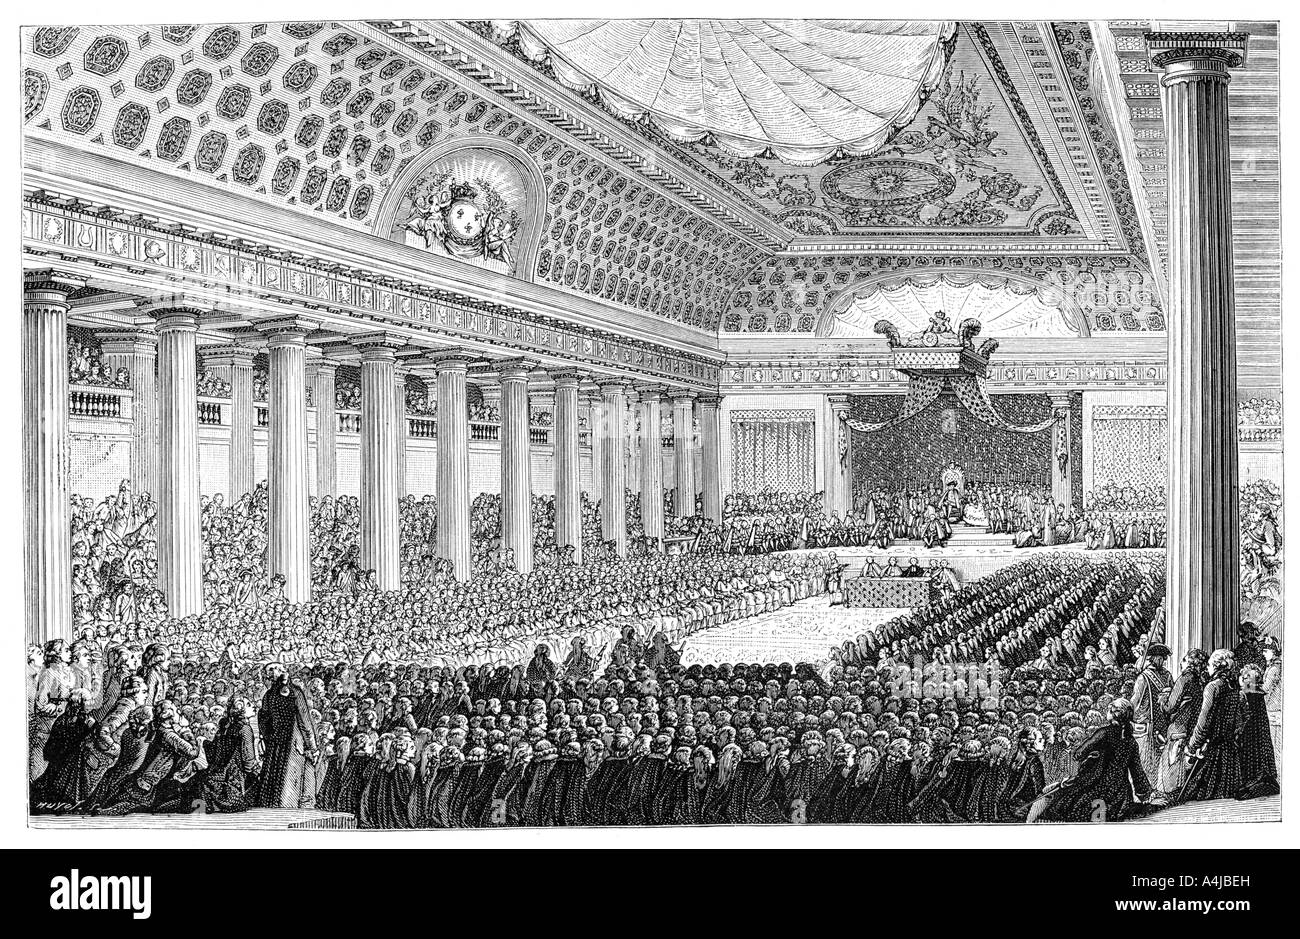 Estates General France Stock Photos. Opening Of The Estates General Versailles 1789 1885 Stock. Wiring. 1789 Estates General Diagram At Scoala.co